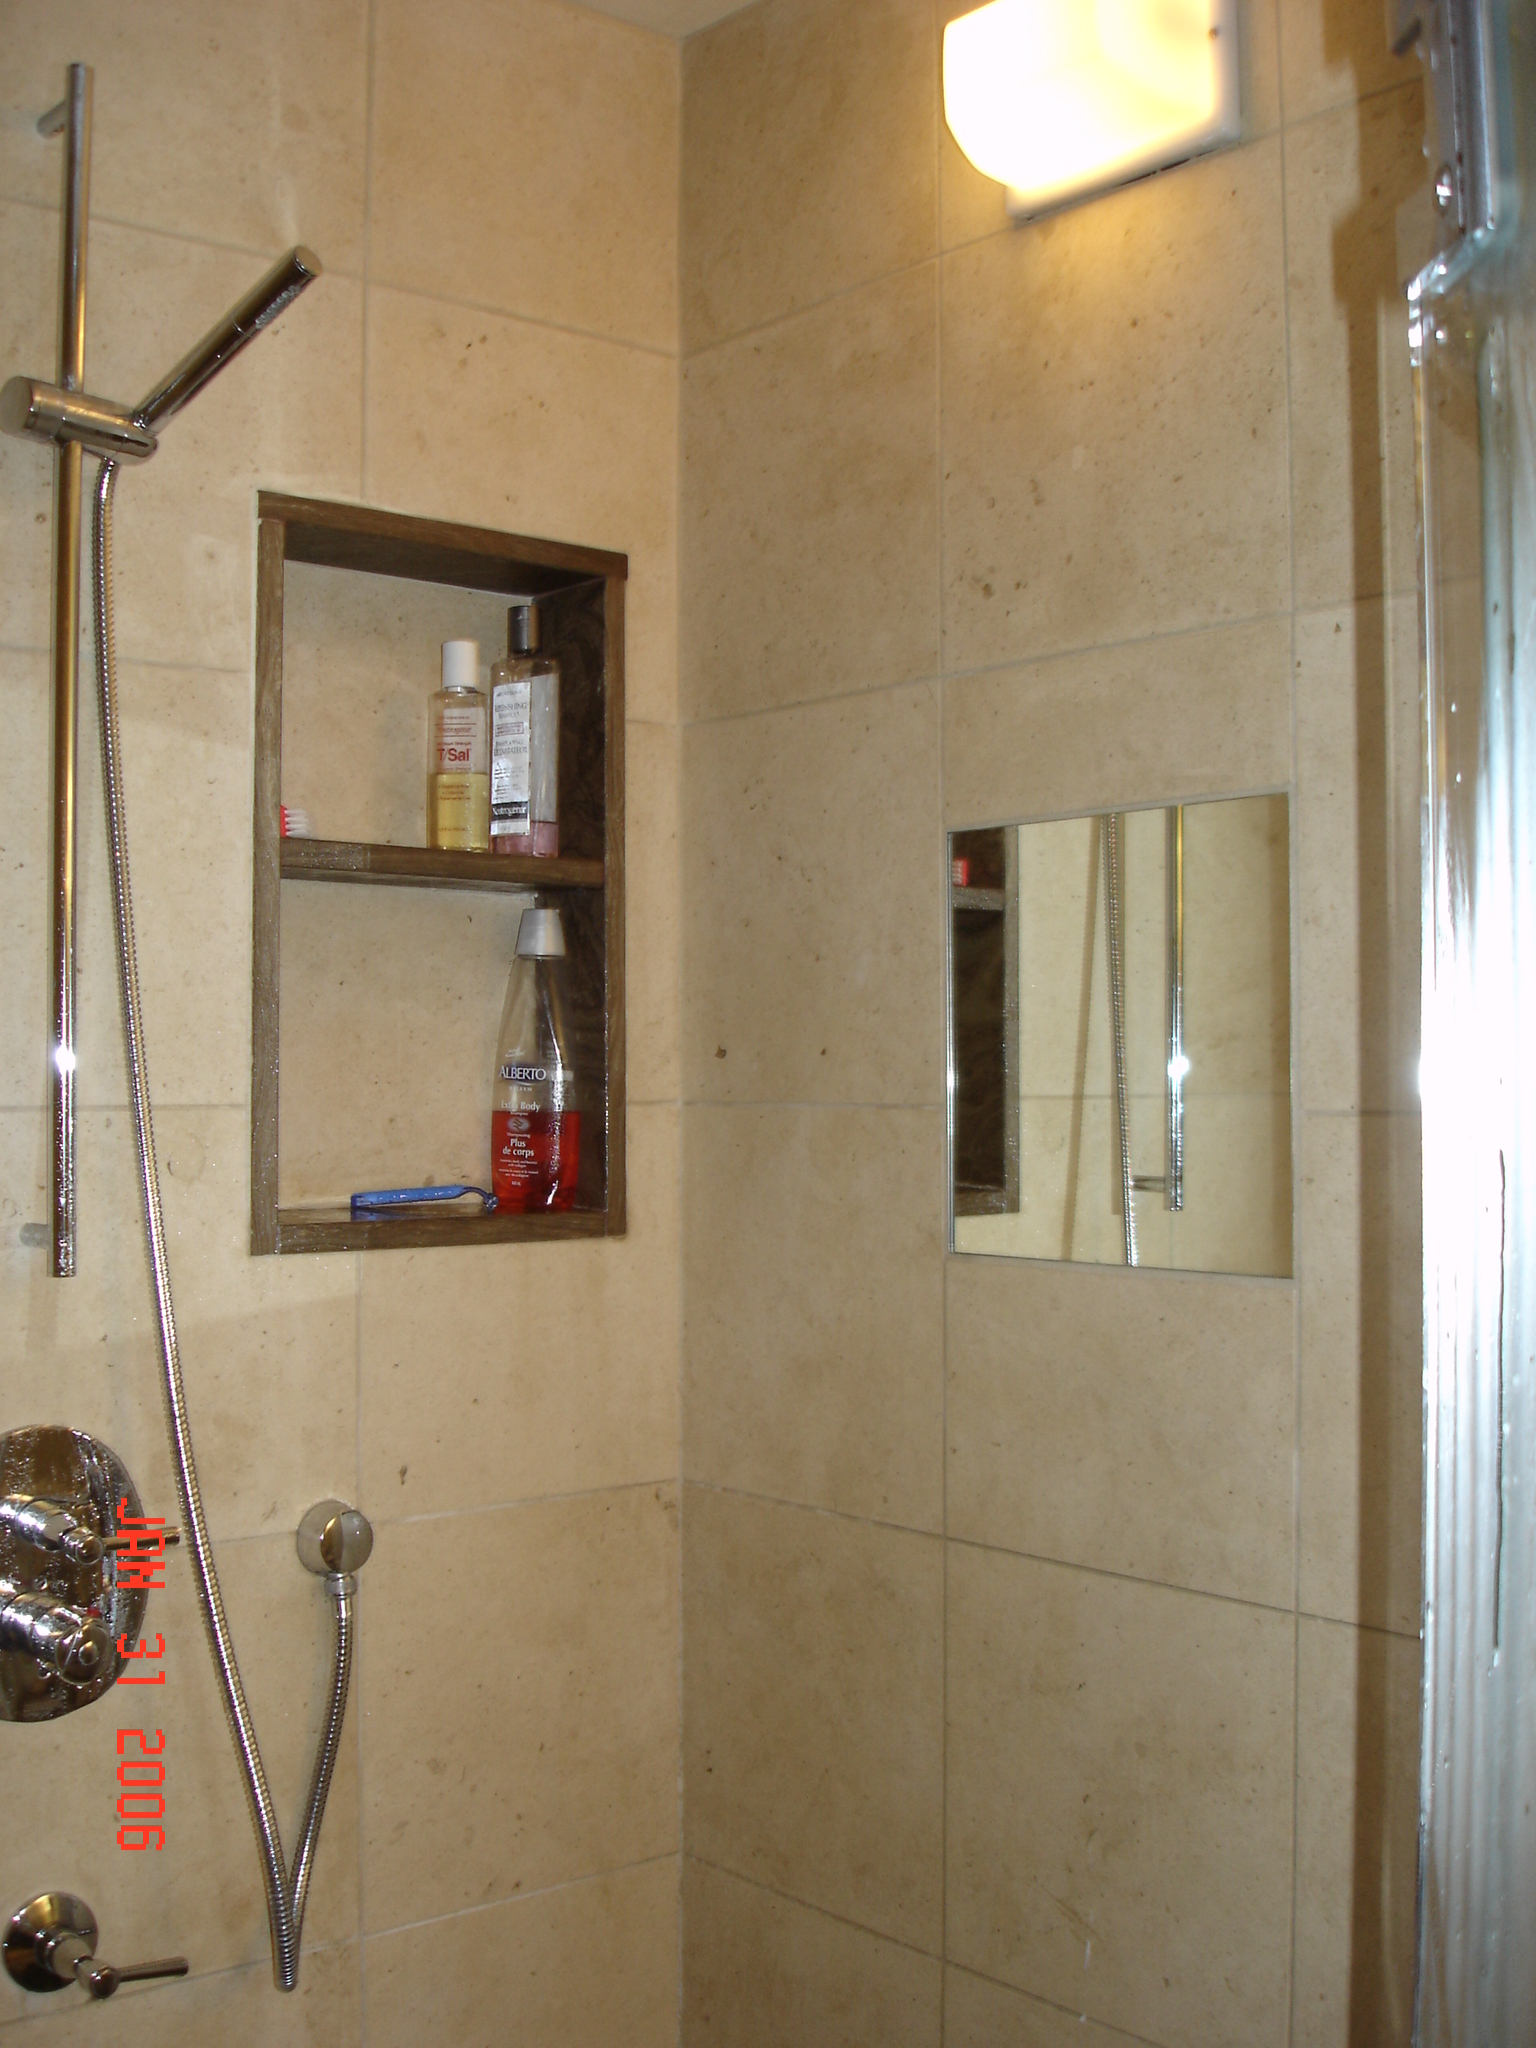 Shower Door Of Canada Inc Toronto Manufacturer And Installer Glass Sliding Doors Bathtub Enclosures Stair Railings